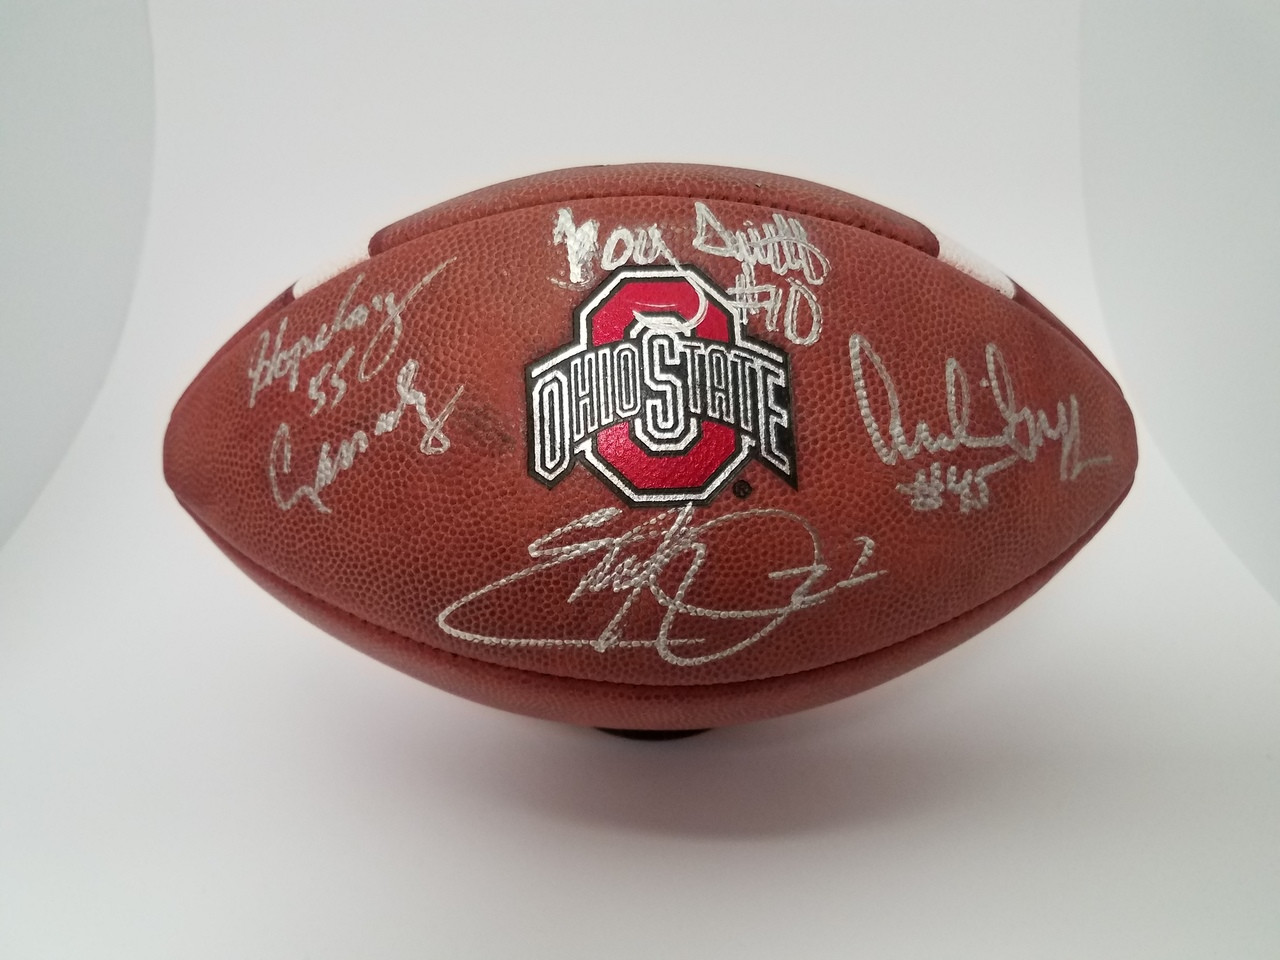 Ohio State Buckeyes Heisman Trophy Winners Autographed Authentic OSU Buckeyes Leather Game Football - Signed by Howard Cassady, Archie Griffin, Eddie George, Troy Smith - Certified Authentic